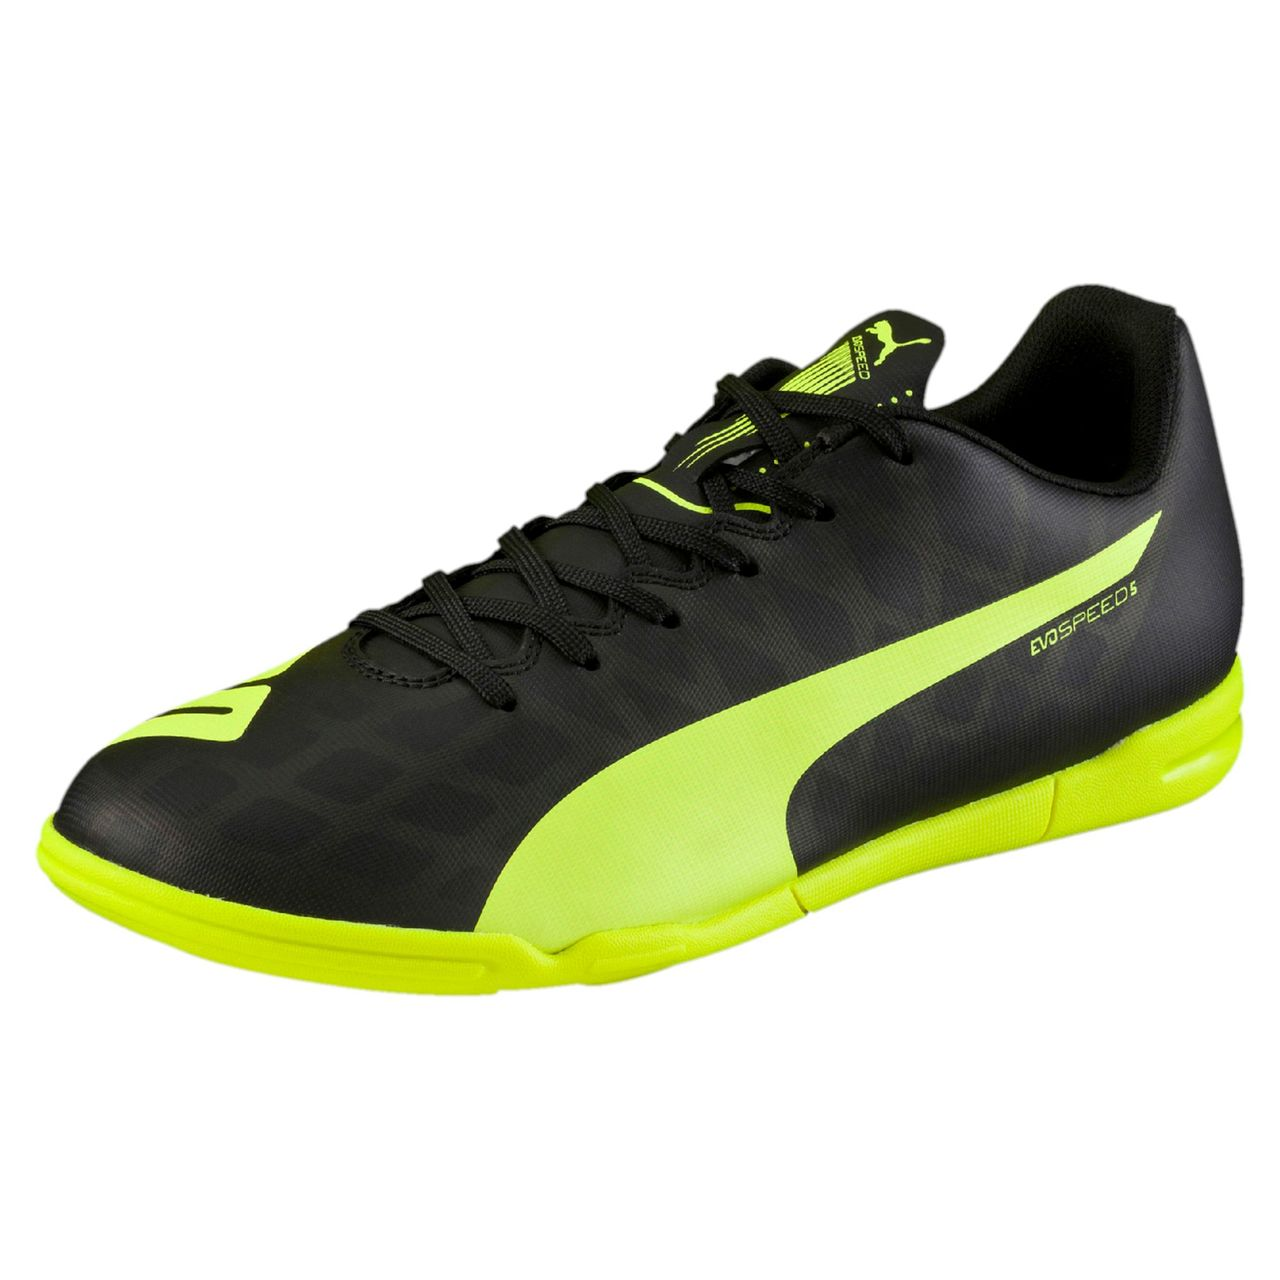 Puma Evospeed 5.4 IT Indoor Training Shoes - Black   Safety Yellow ... 0920697d0bf7